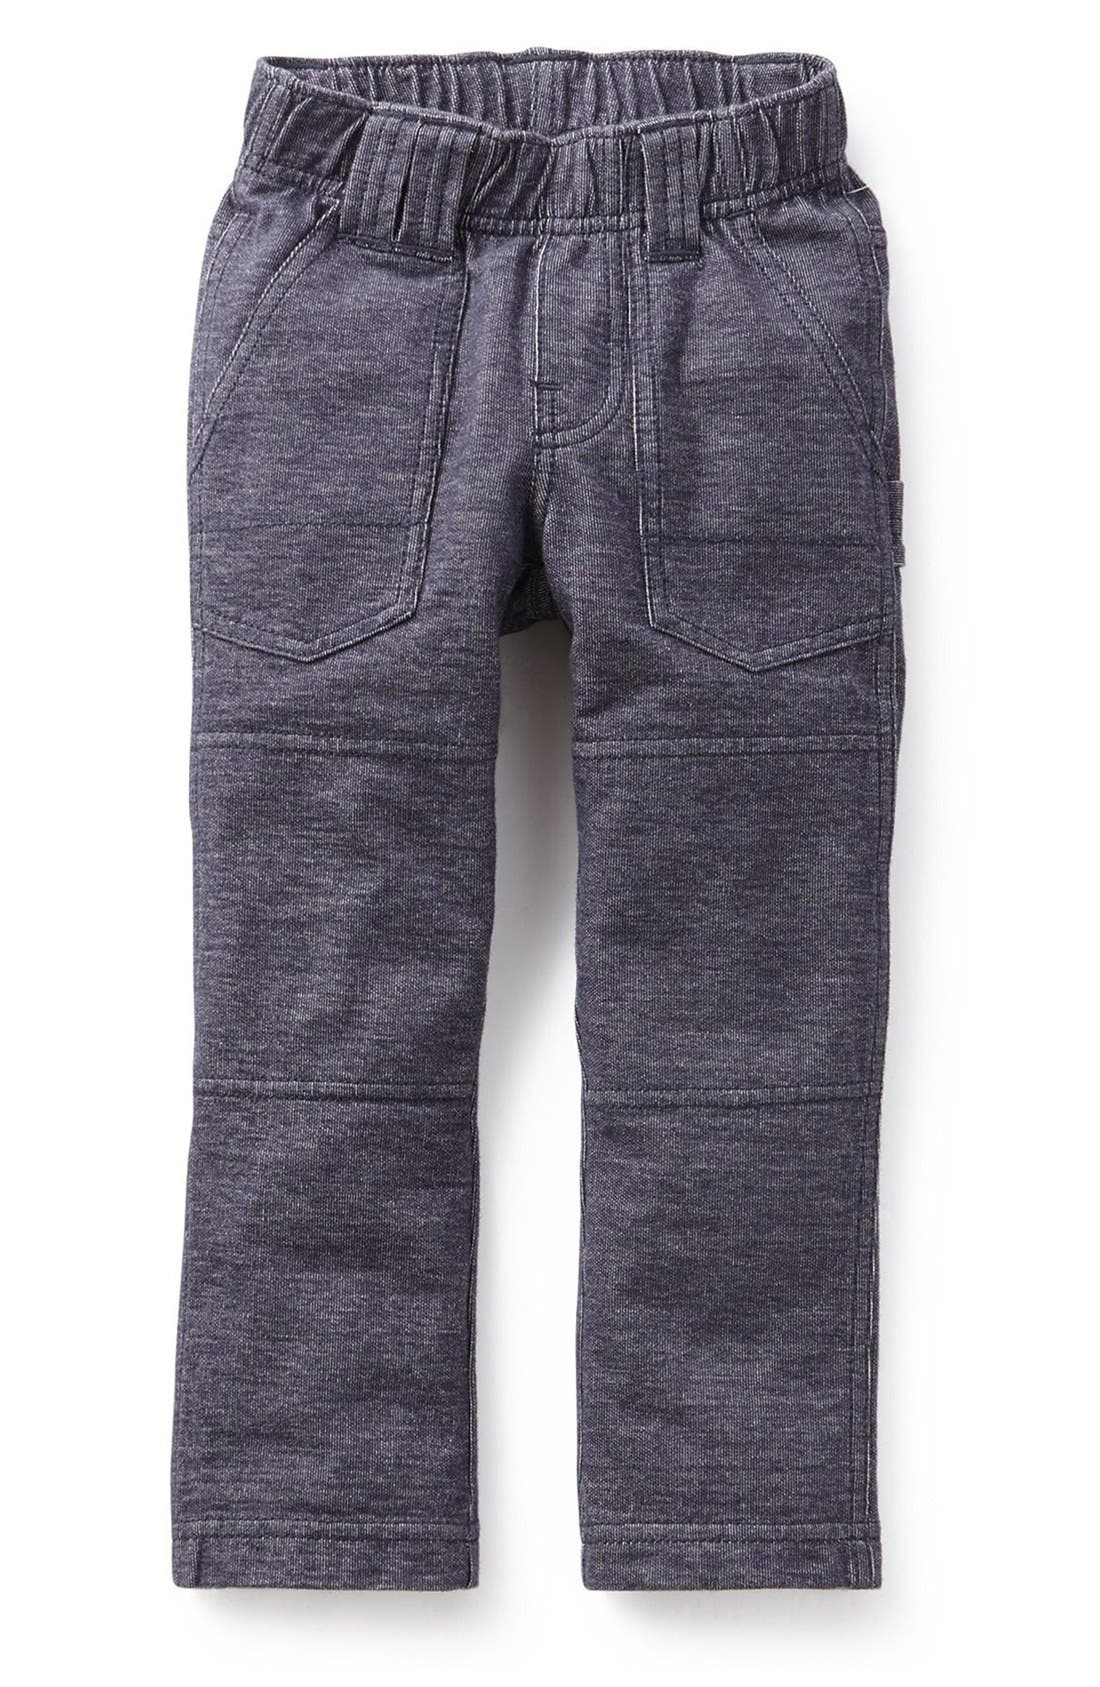 'Playwear' Pants,                         Main,                         color, Indigo